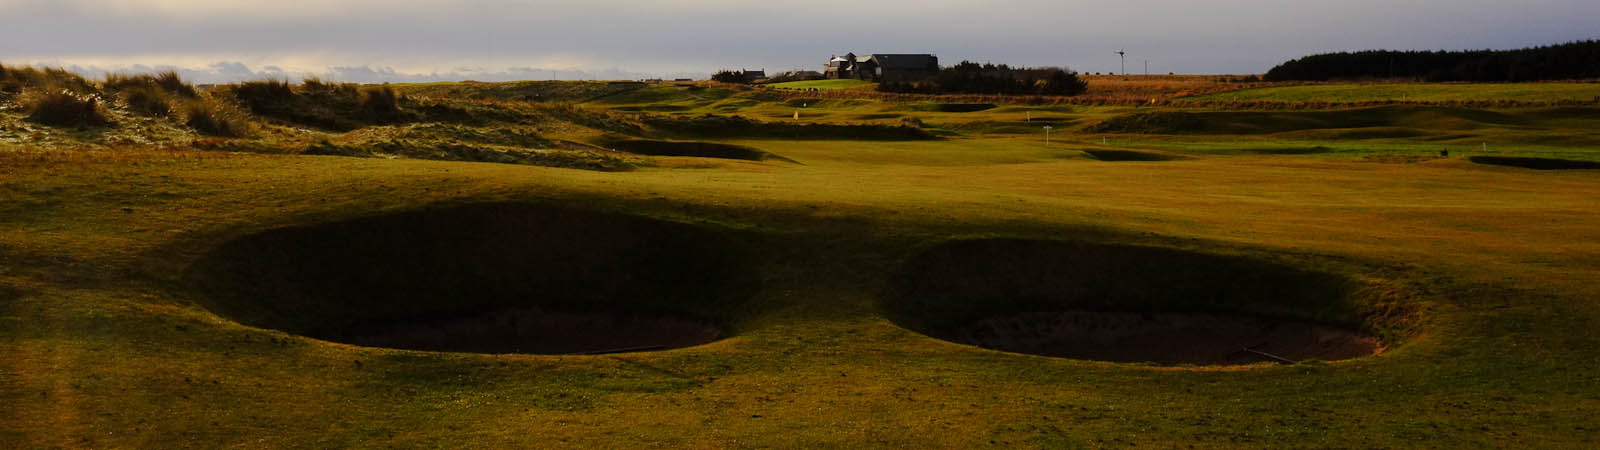 Bunkers on the 6th